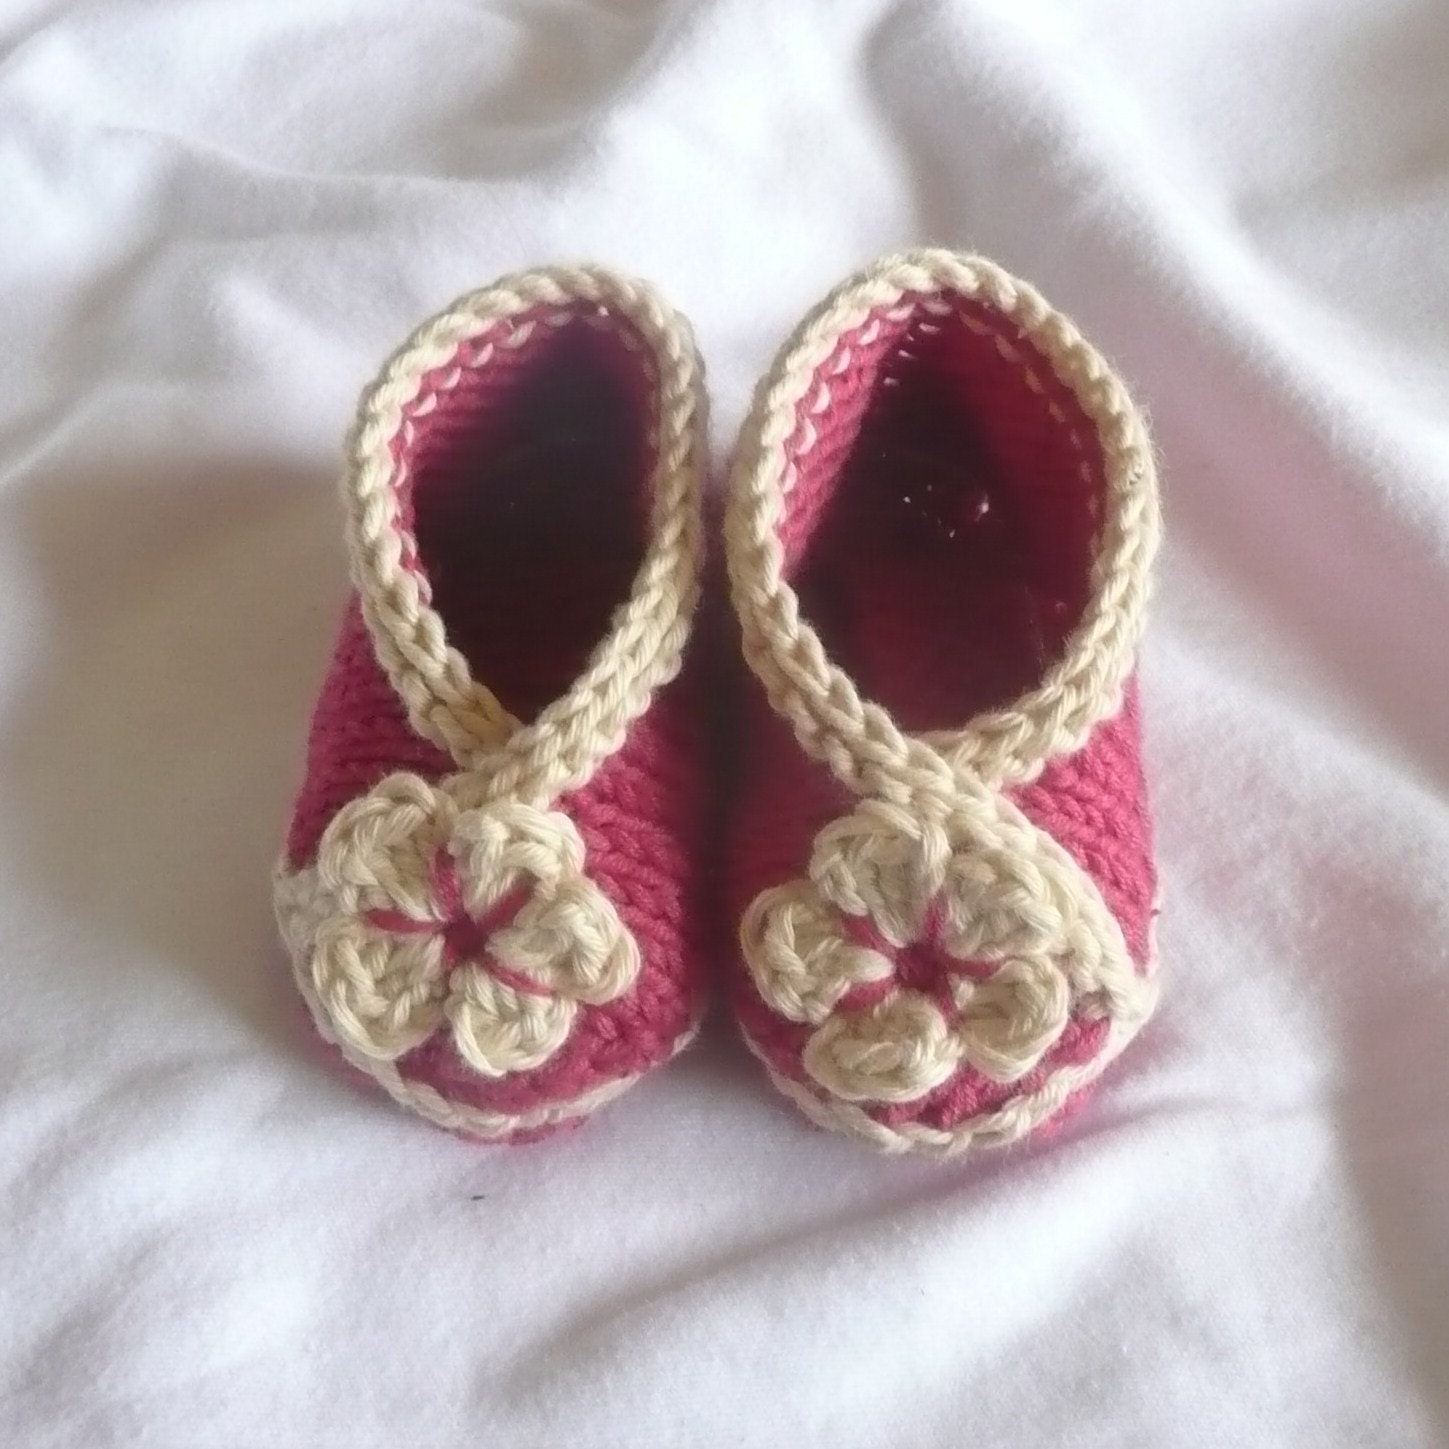 Knitting Baby Booties Patterns : Baby booties knitting pattern crossover shoes instant